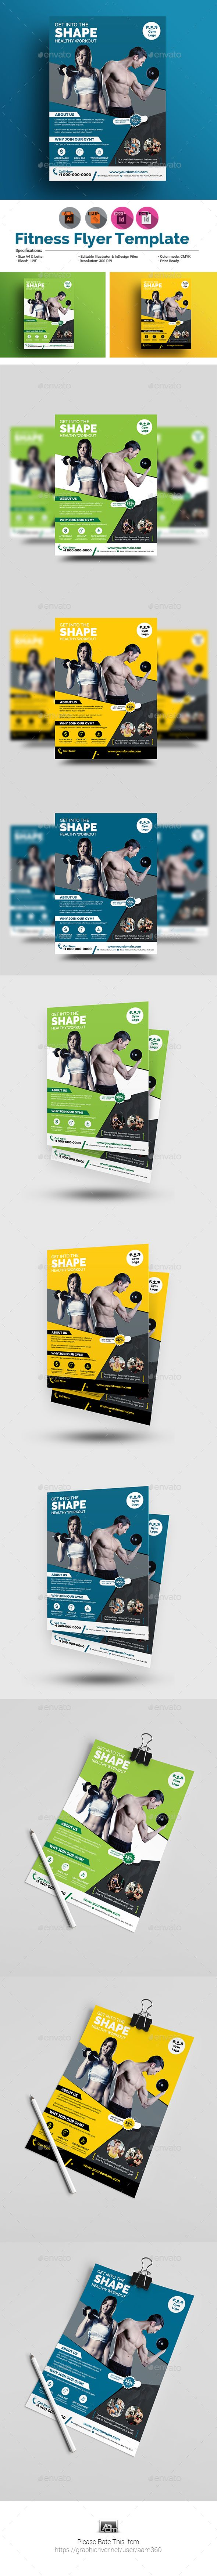 76 best fitness gym sports health print templates images on